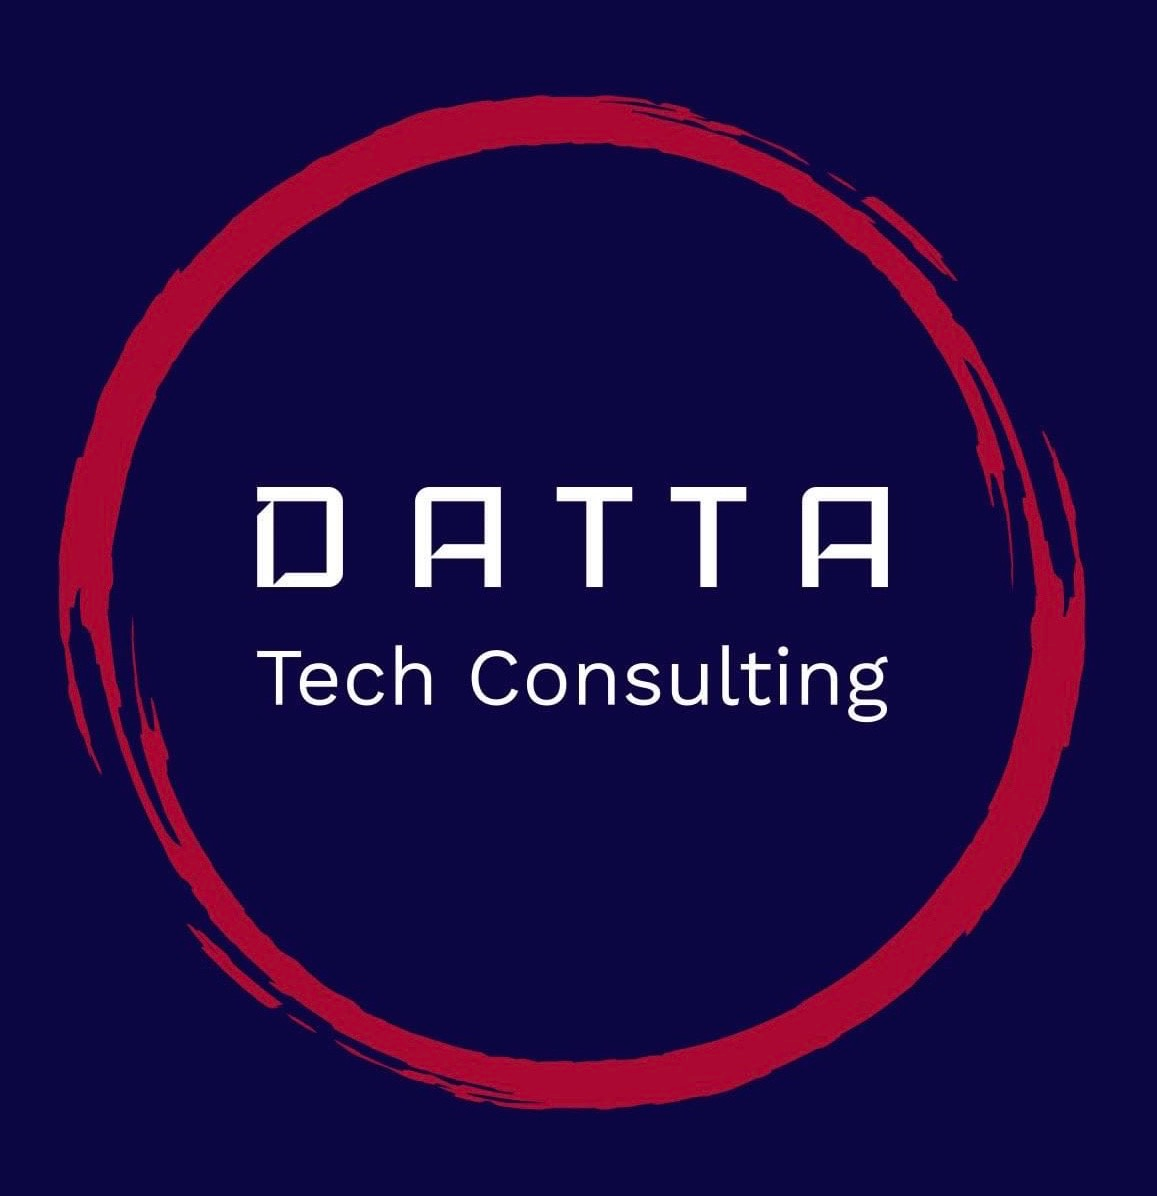 Datta Tech Consulting